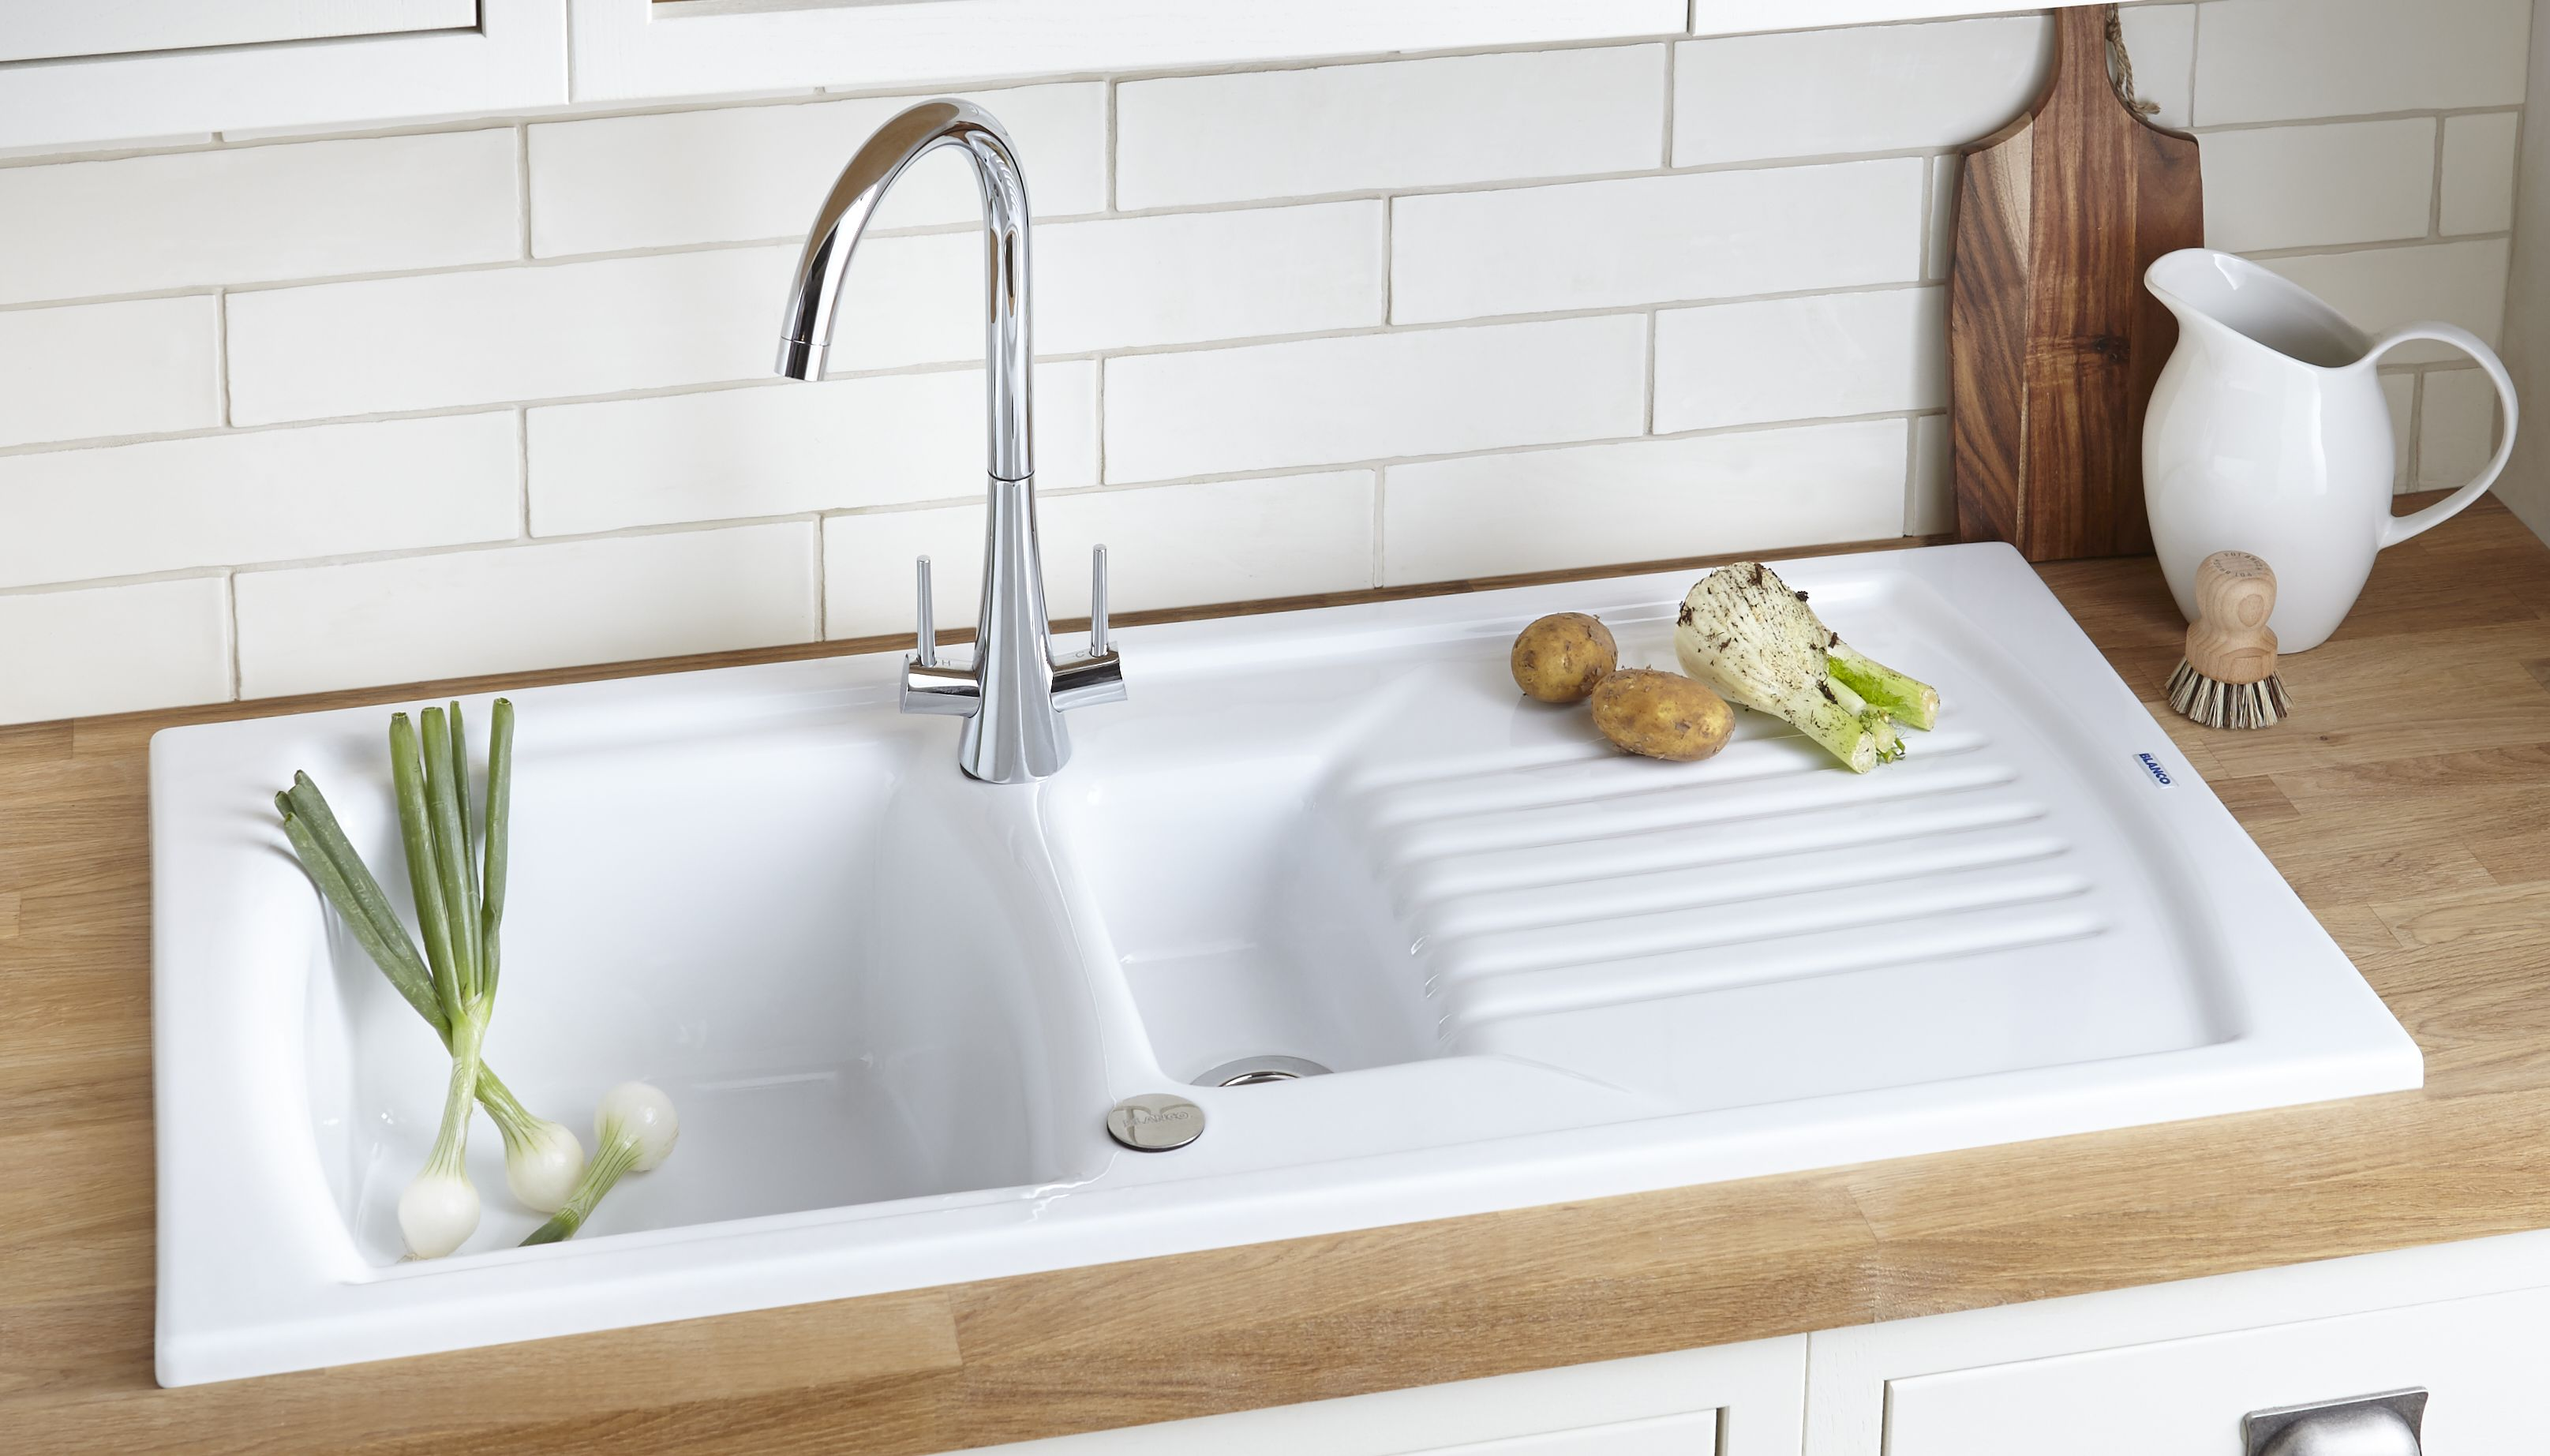 Kitchen Sinks Kitchen Sinks  Metal & Ceramic Kitchen Sinks  Diy At B&q